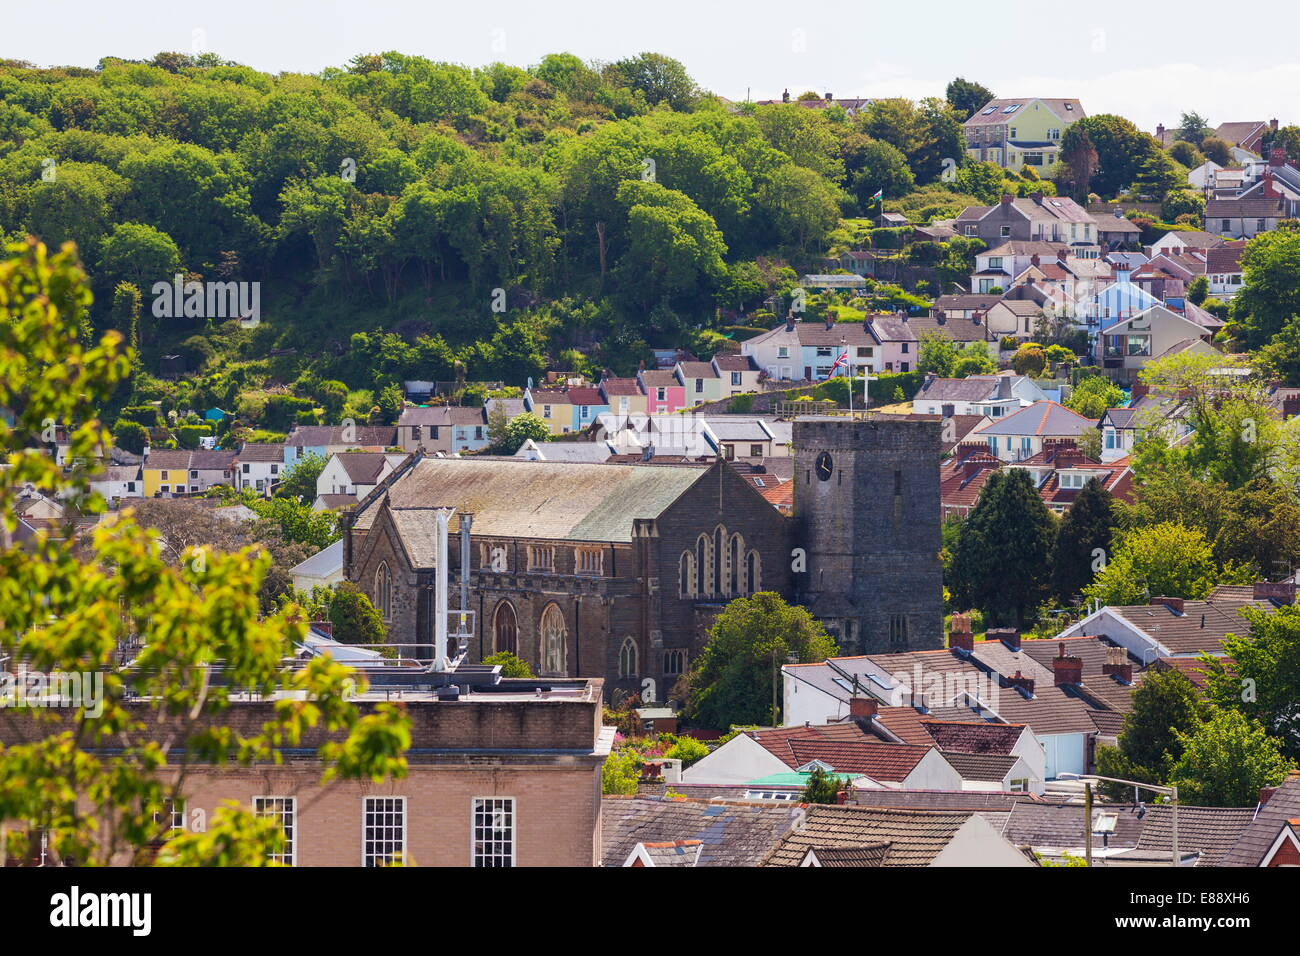 Mumbles, Gower, Swansea, Wales, United Kingdom, Europe - Stock Image